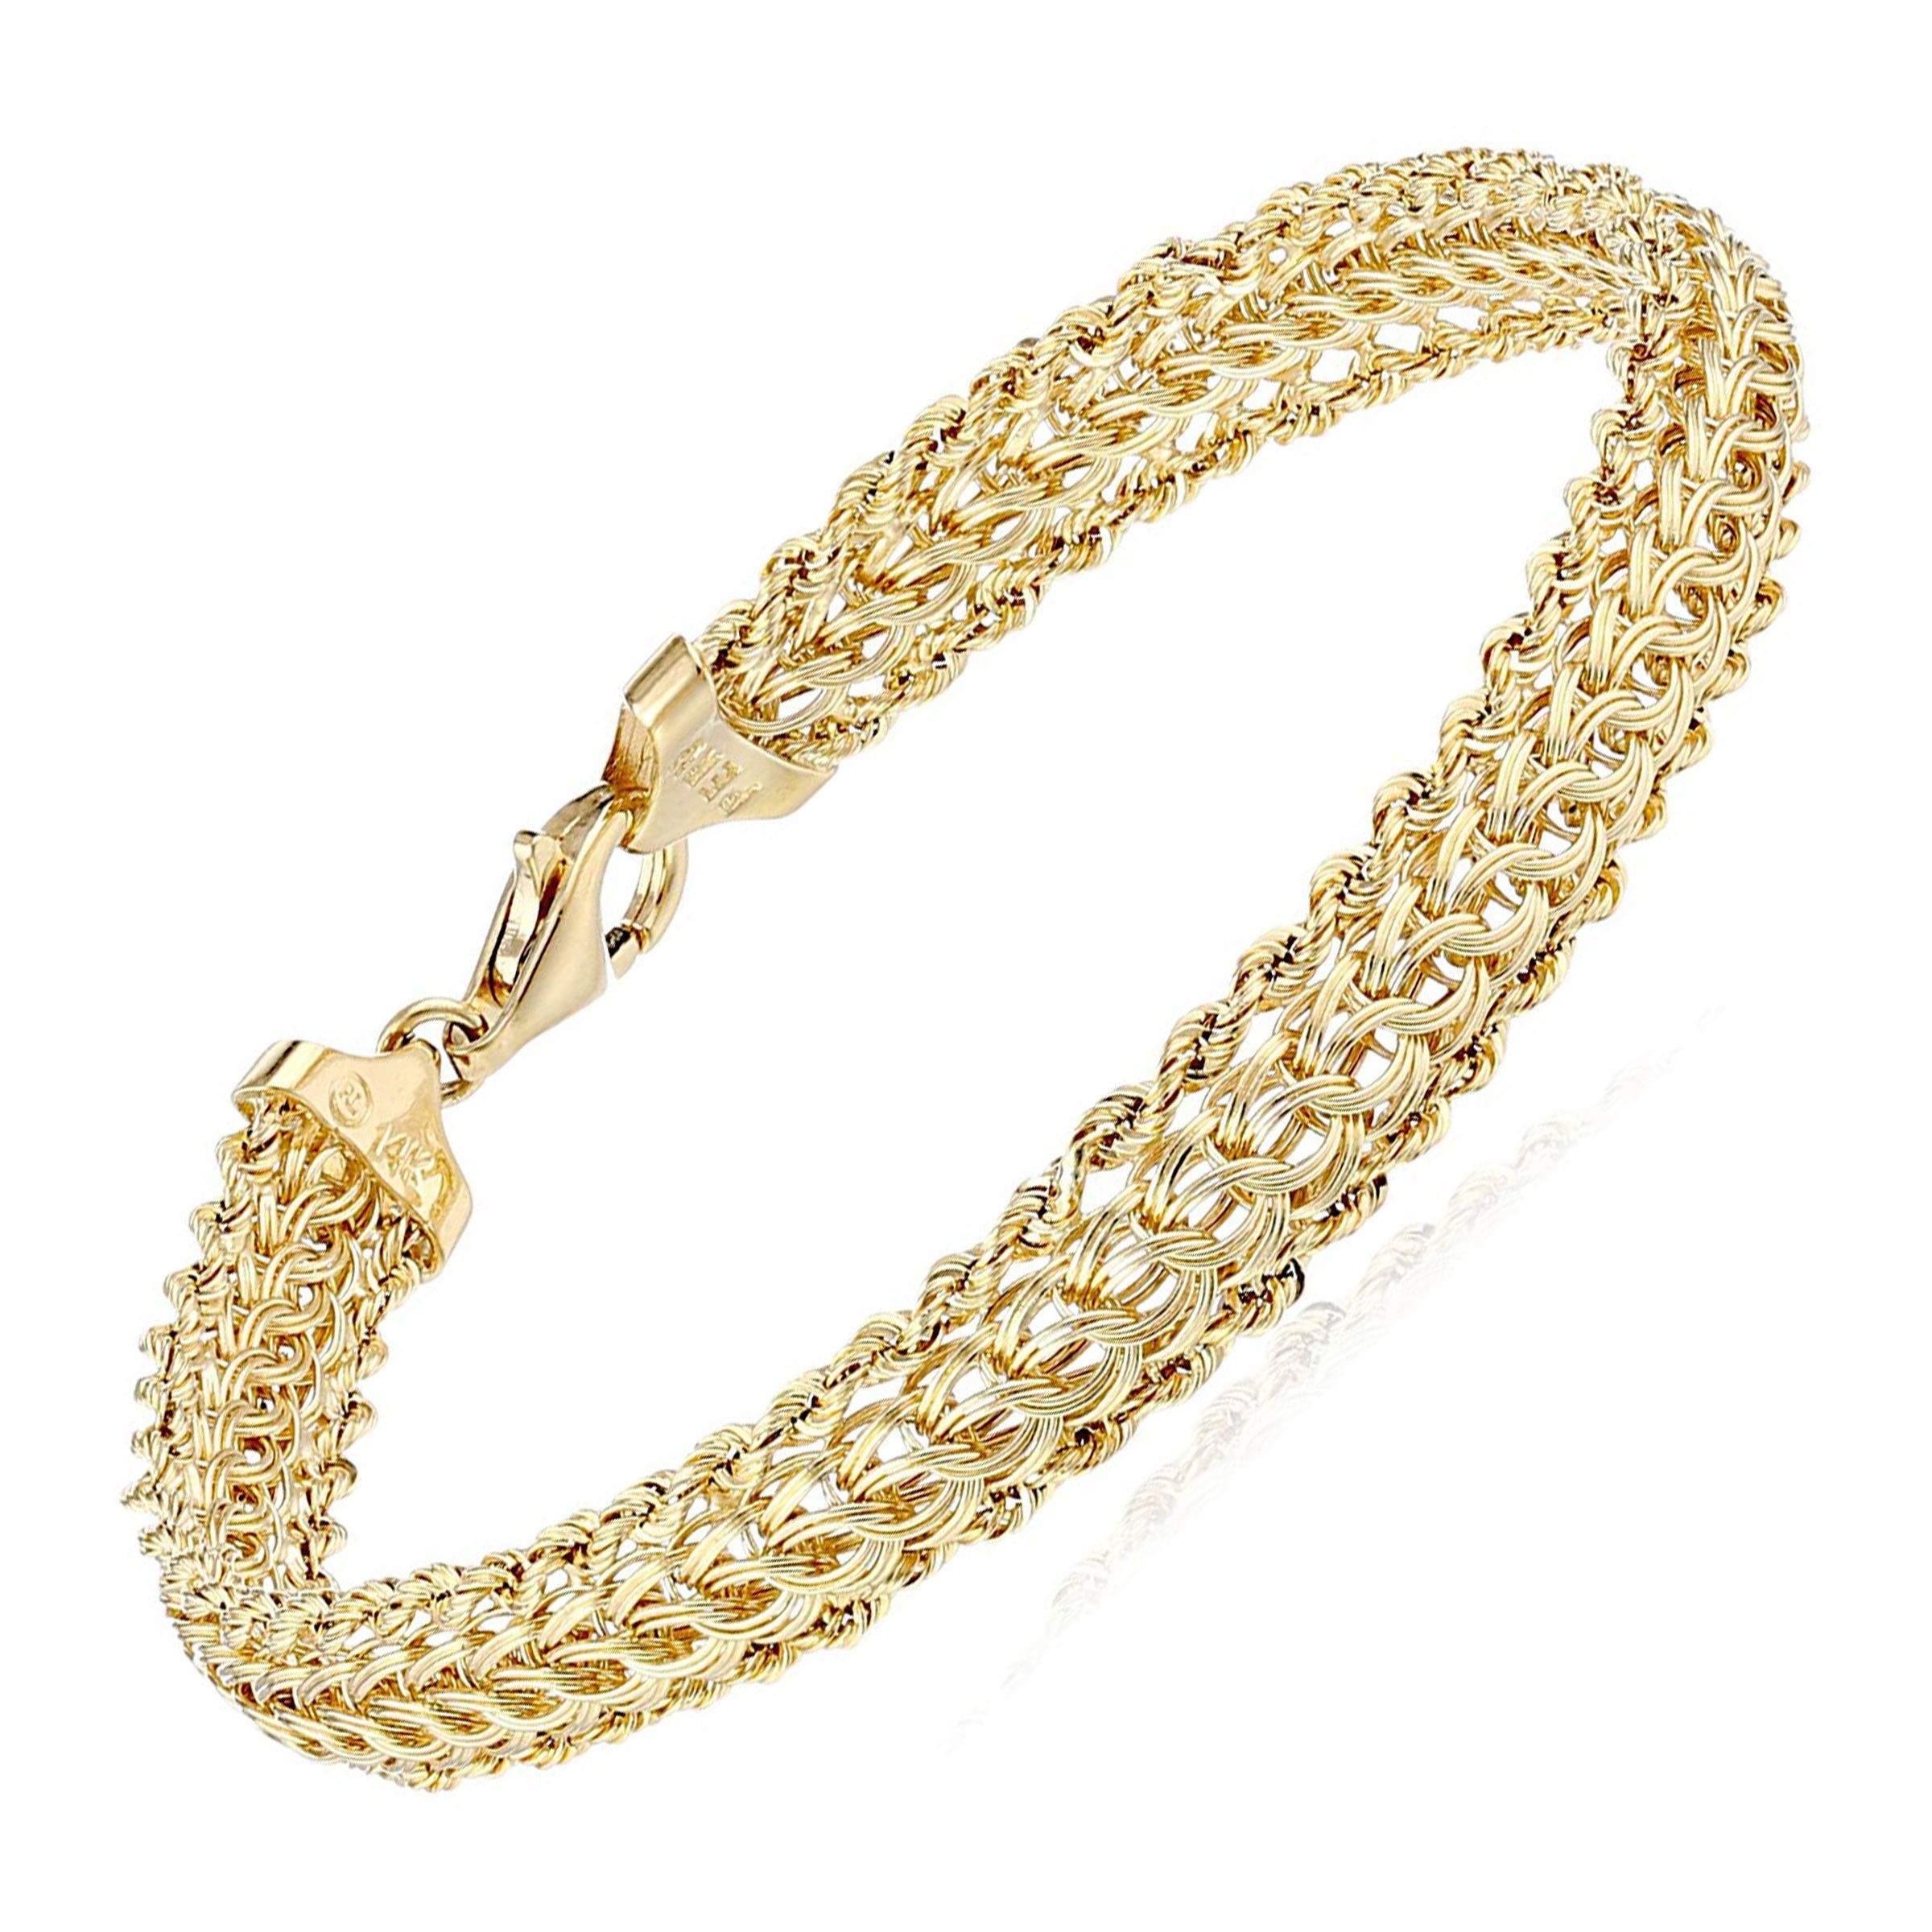 Eternity Gold Layered Woven Chain Bracelet In 14k Gold 7